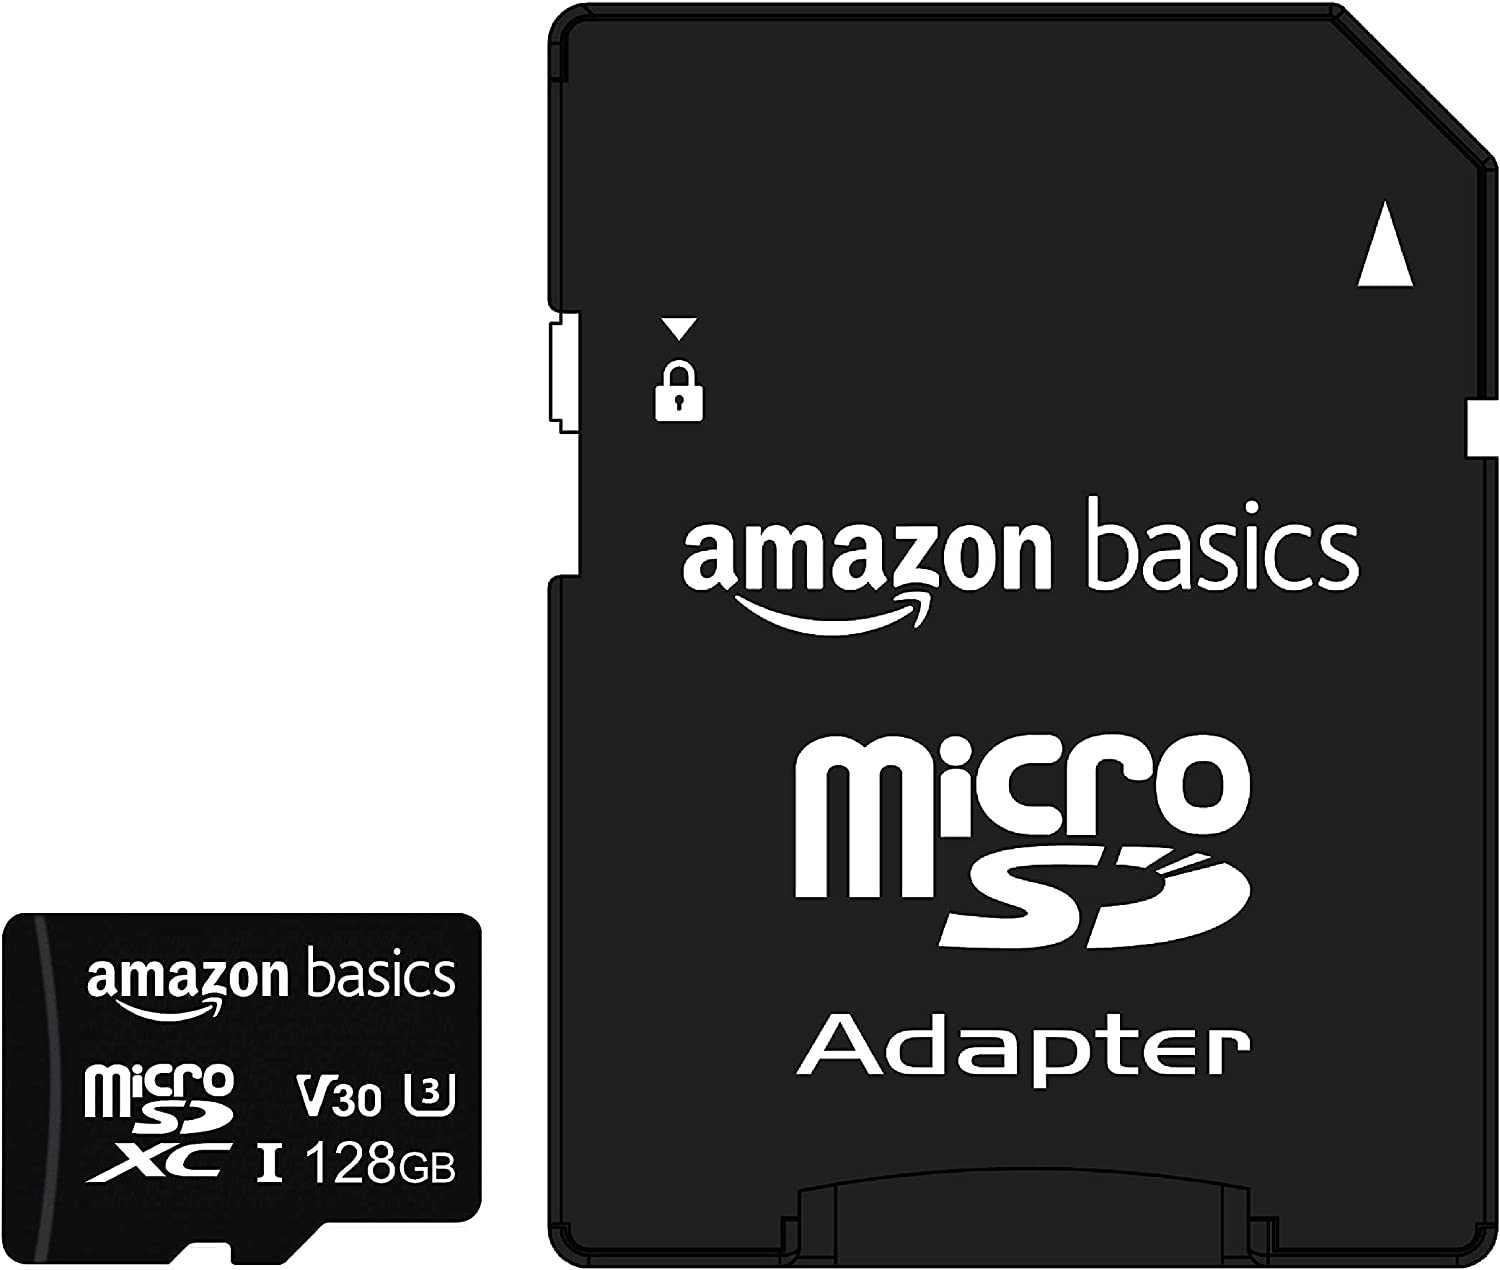 Amazon Basics - 128GB microSDXC Memory Card with Full Size Adapter, A2, U3, read speed up to 100 MB/s